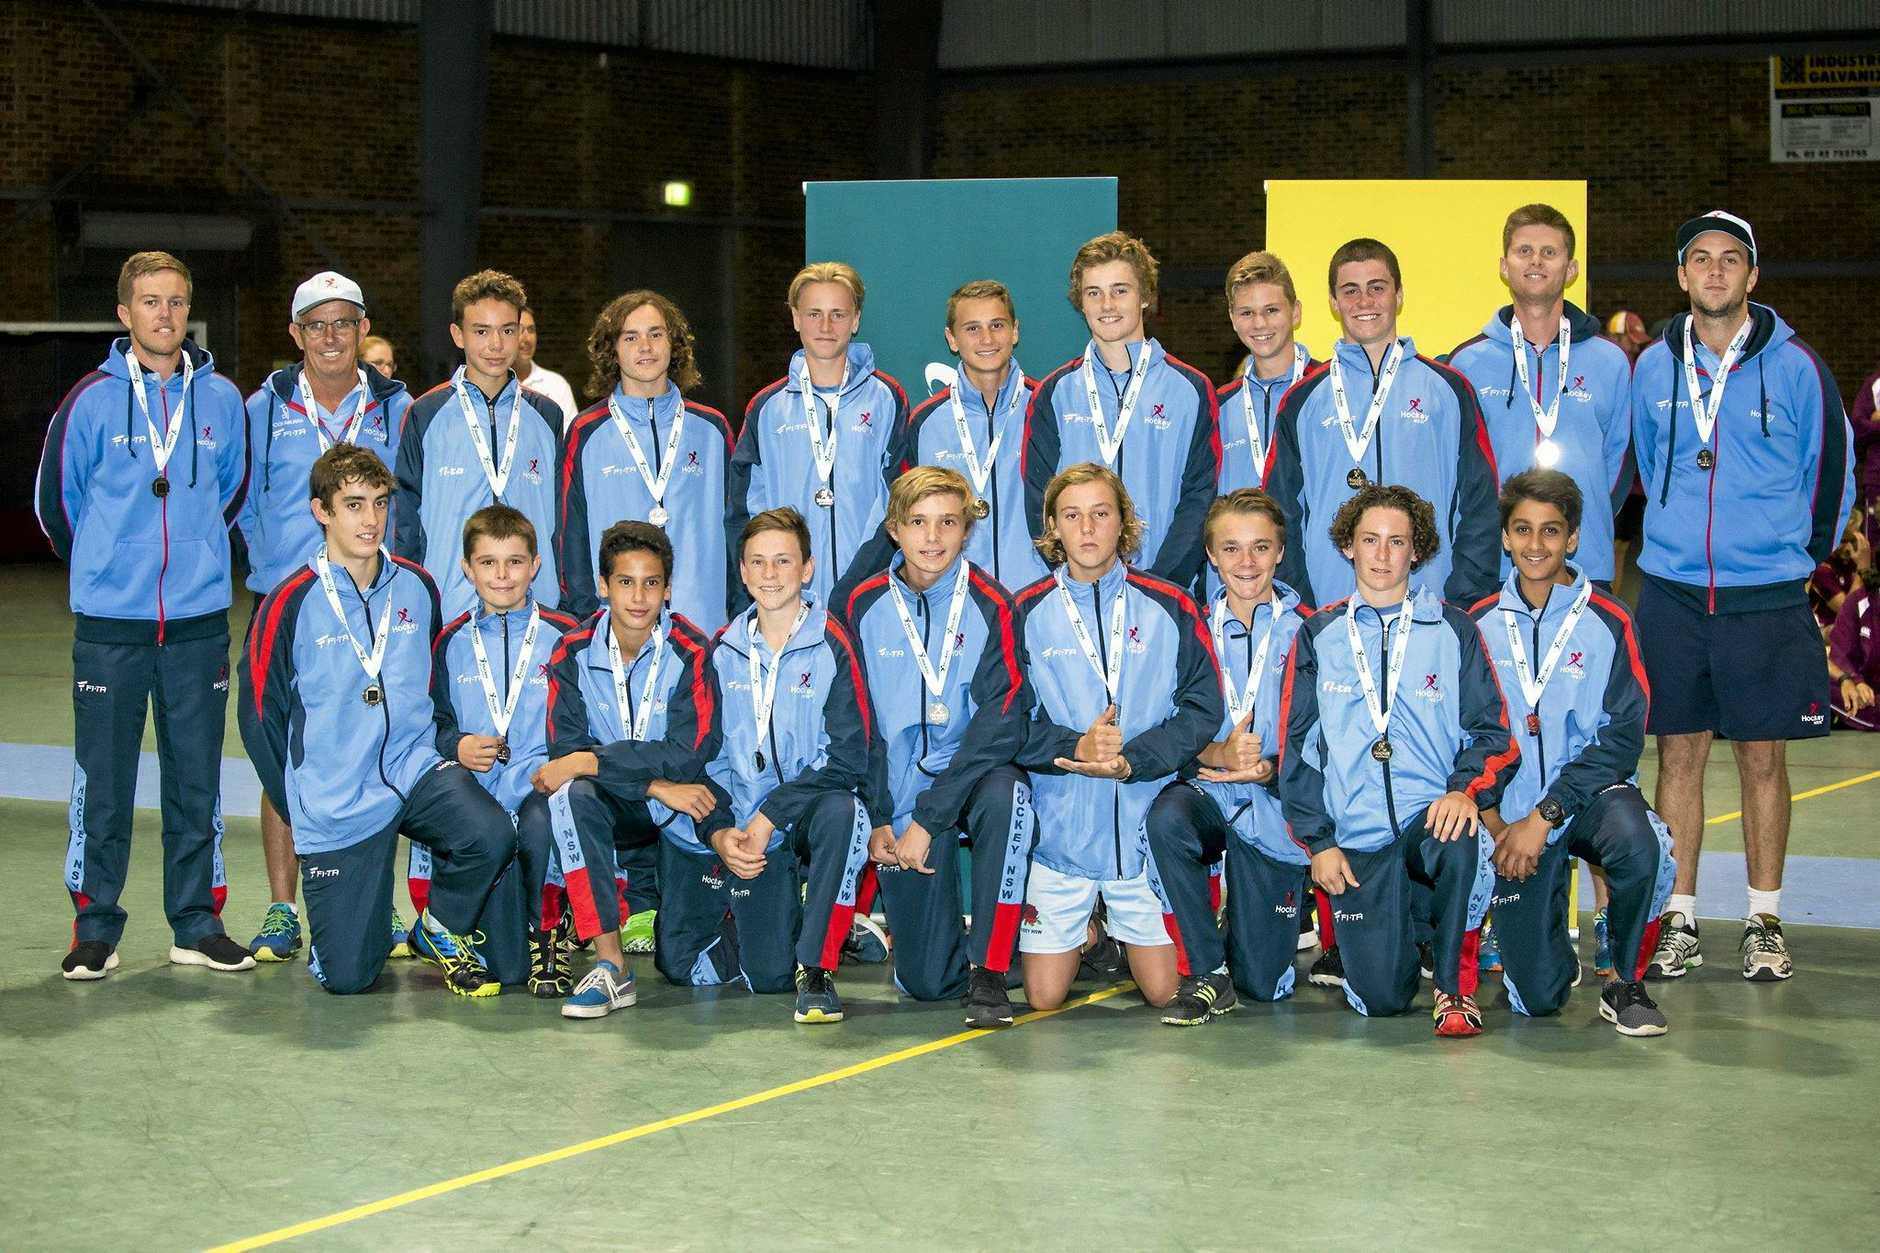 NSW State Under 15s Boys side with Zac Young in the front row second from right.